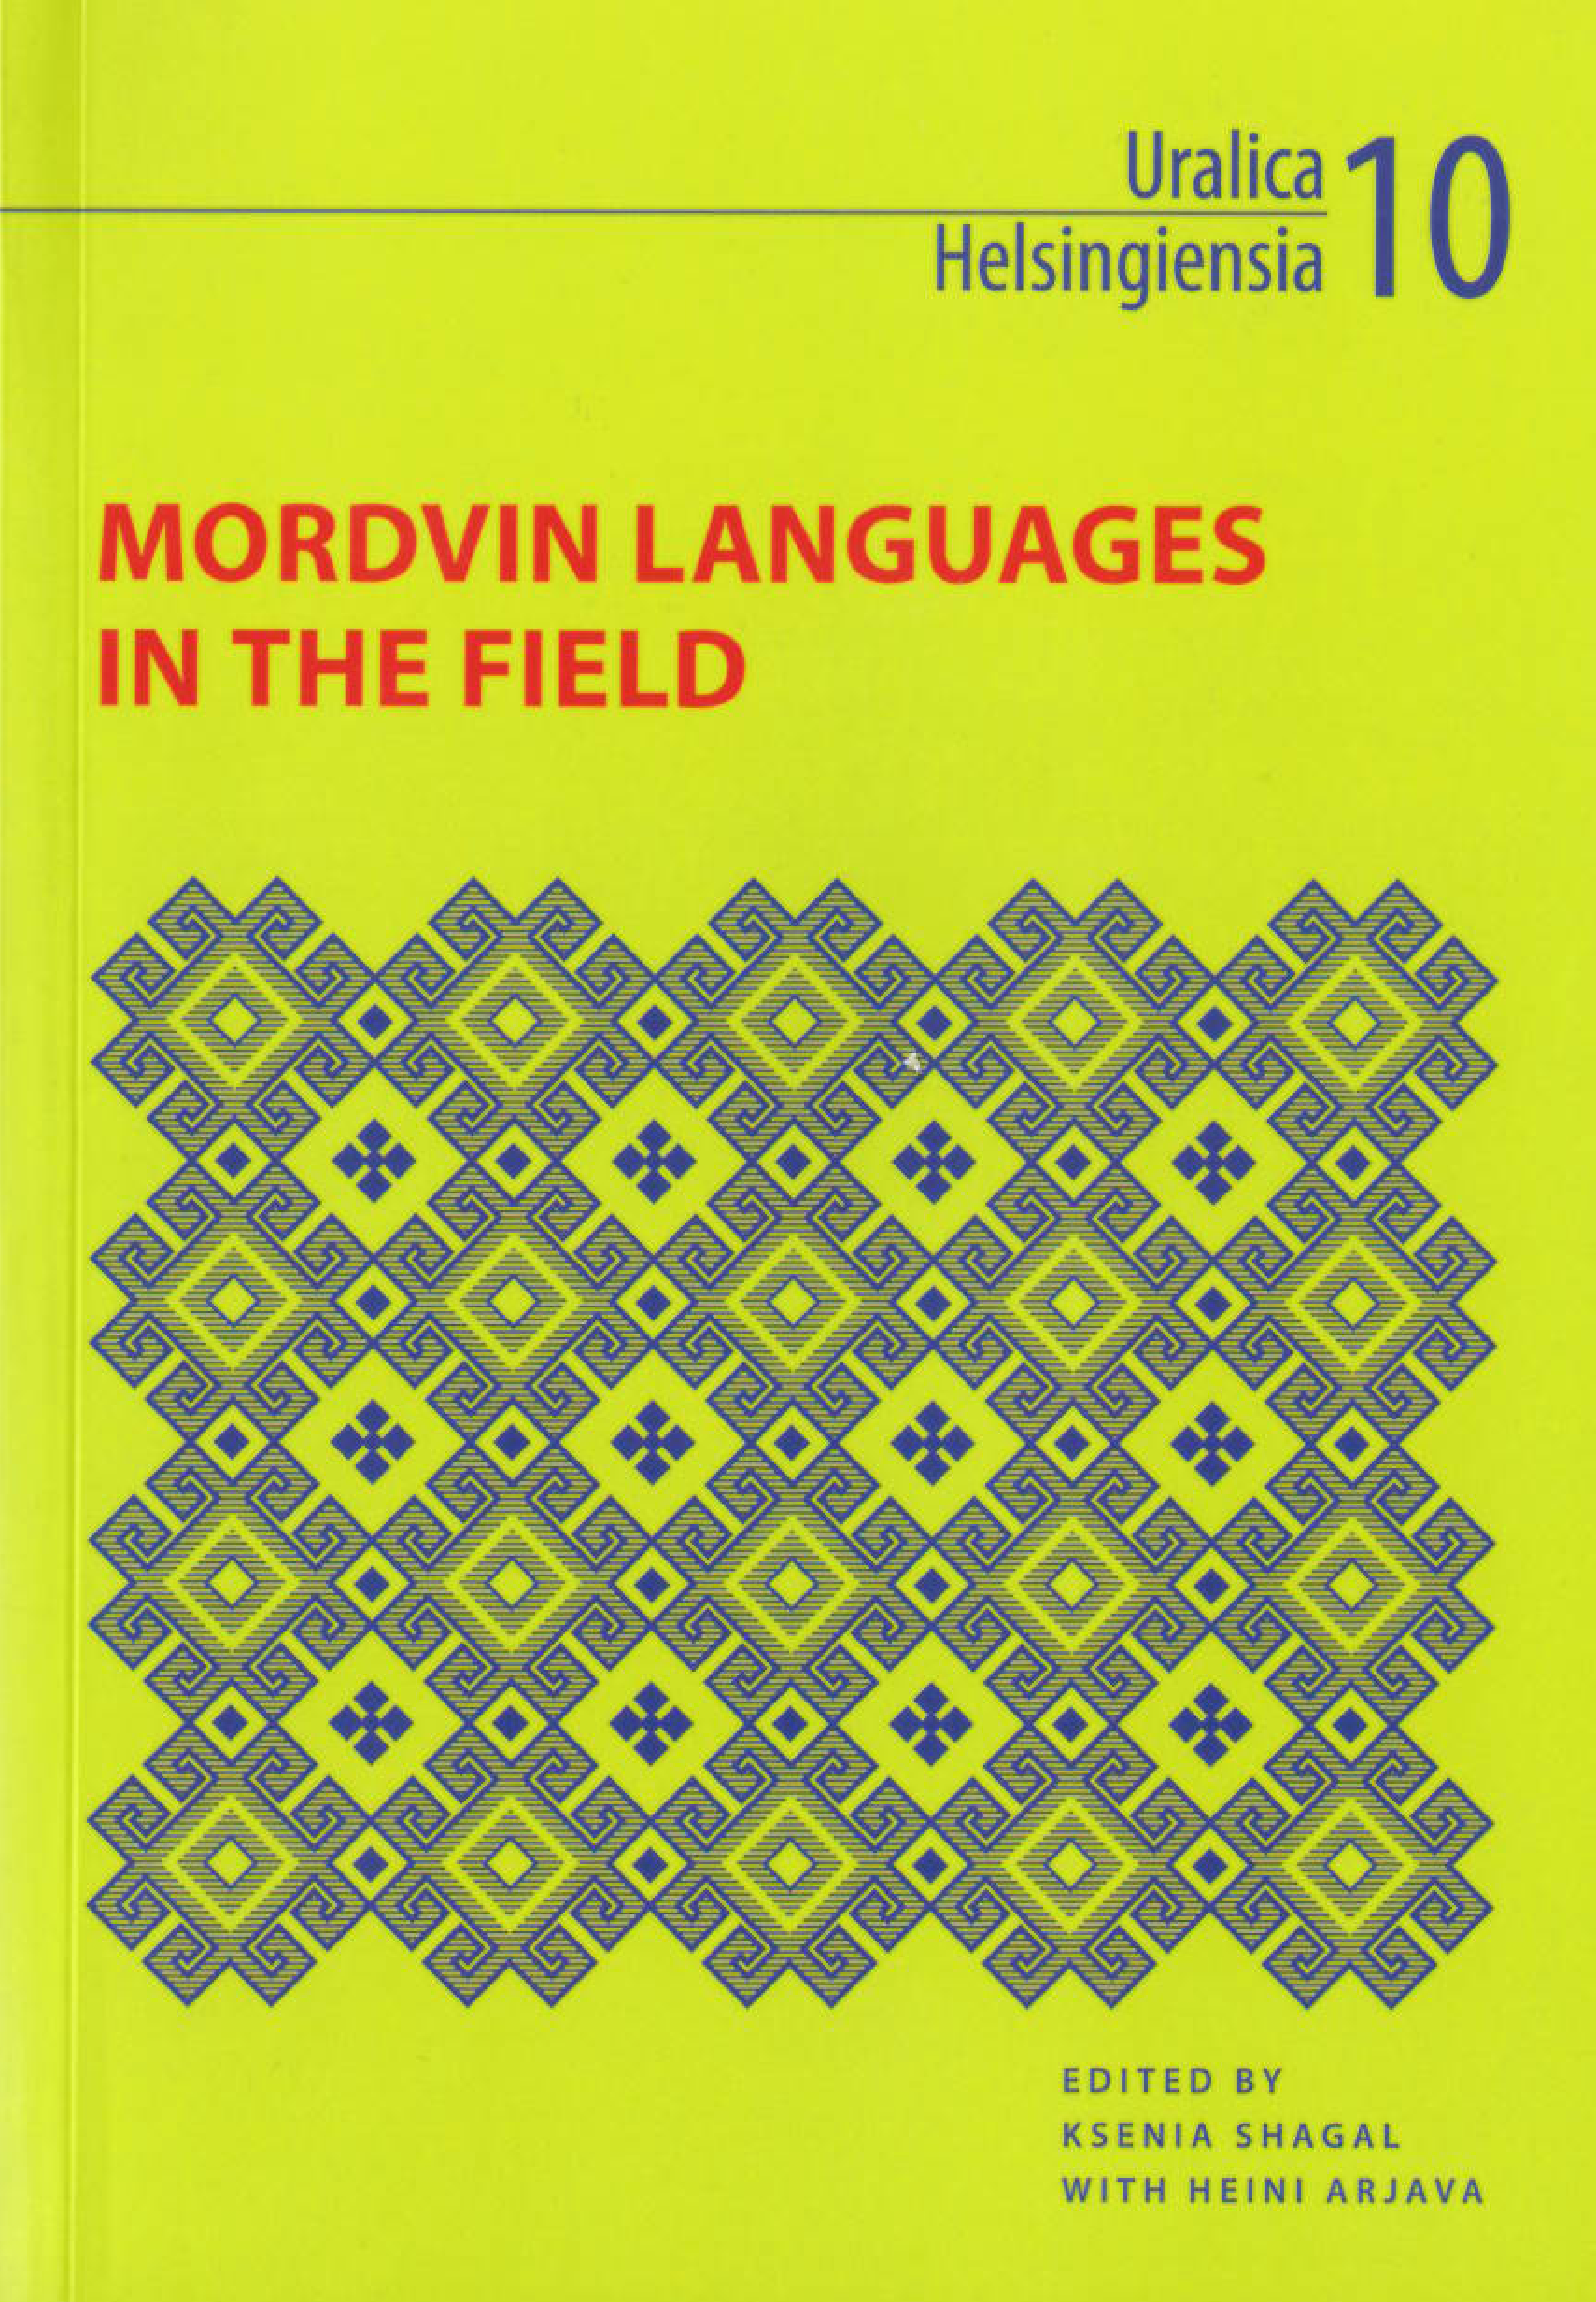 Mordvin languages in the field